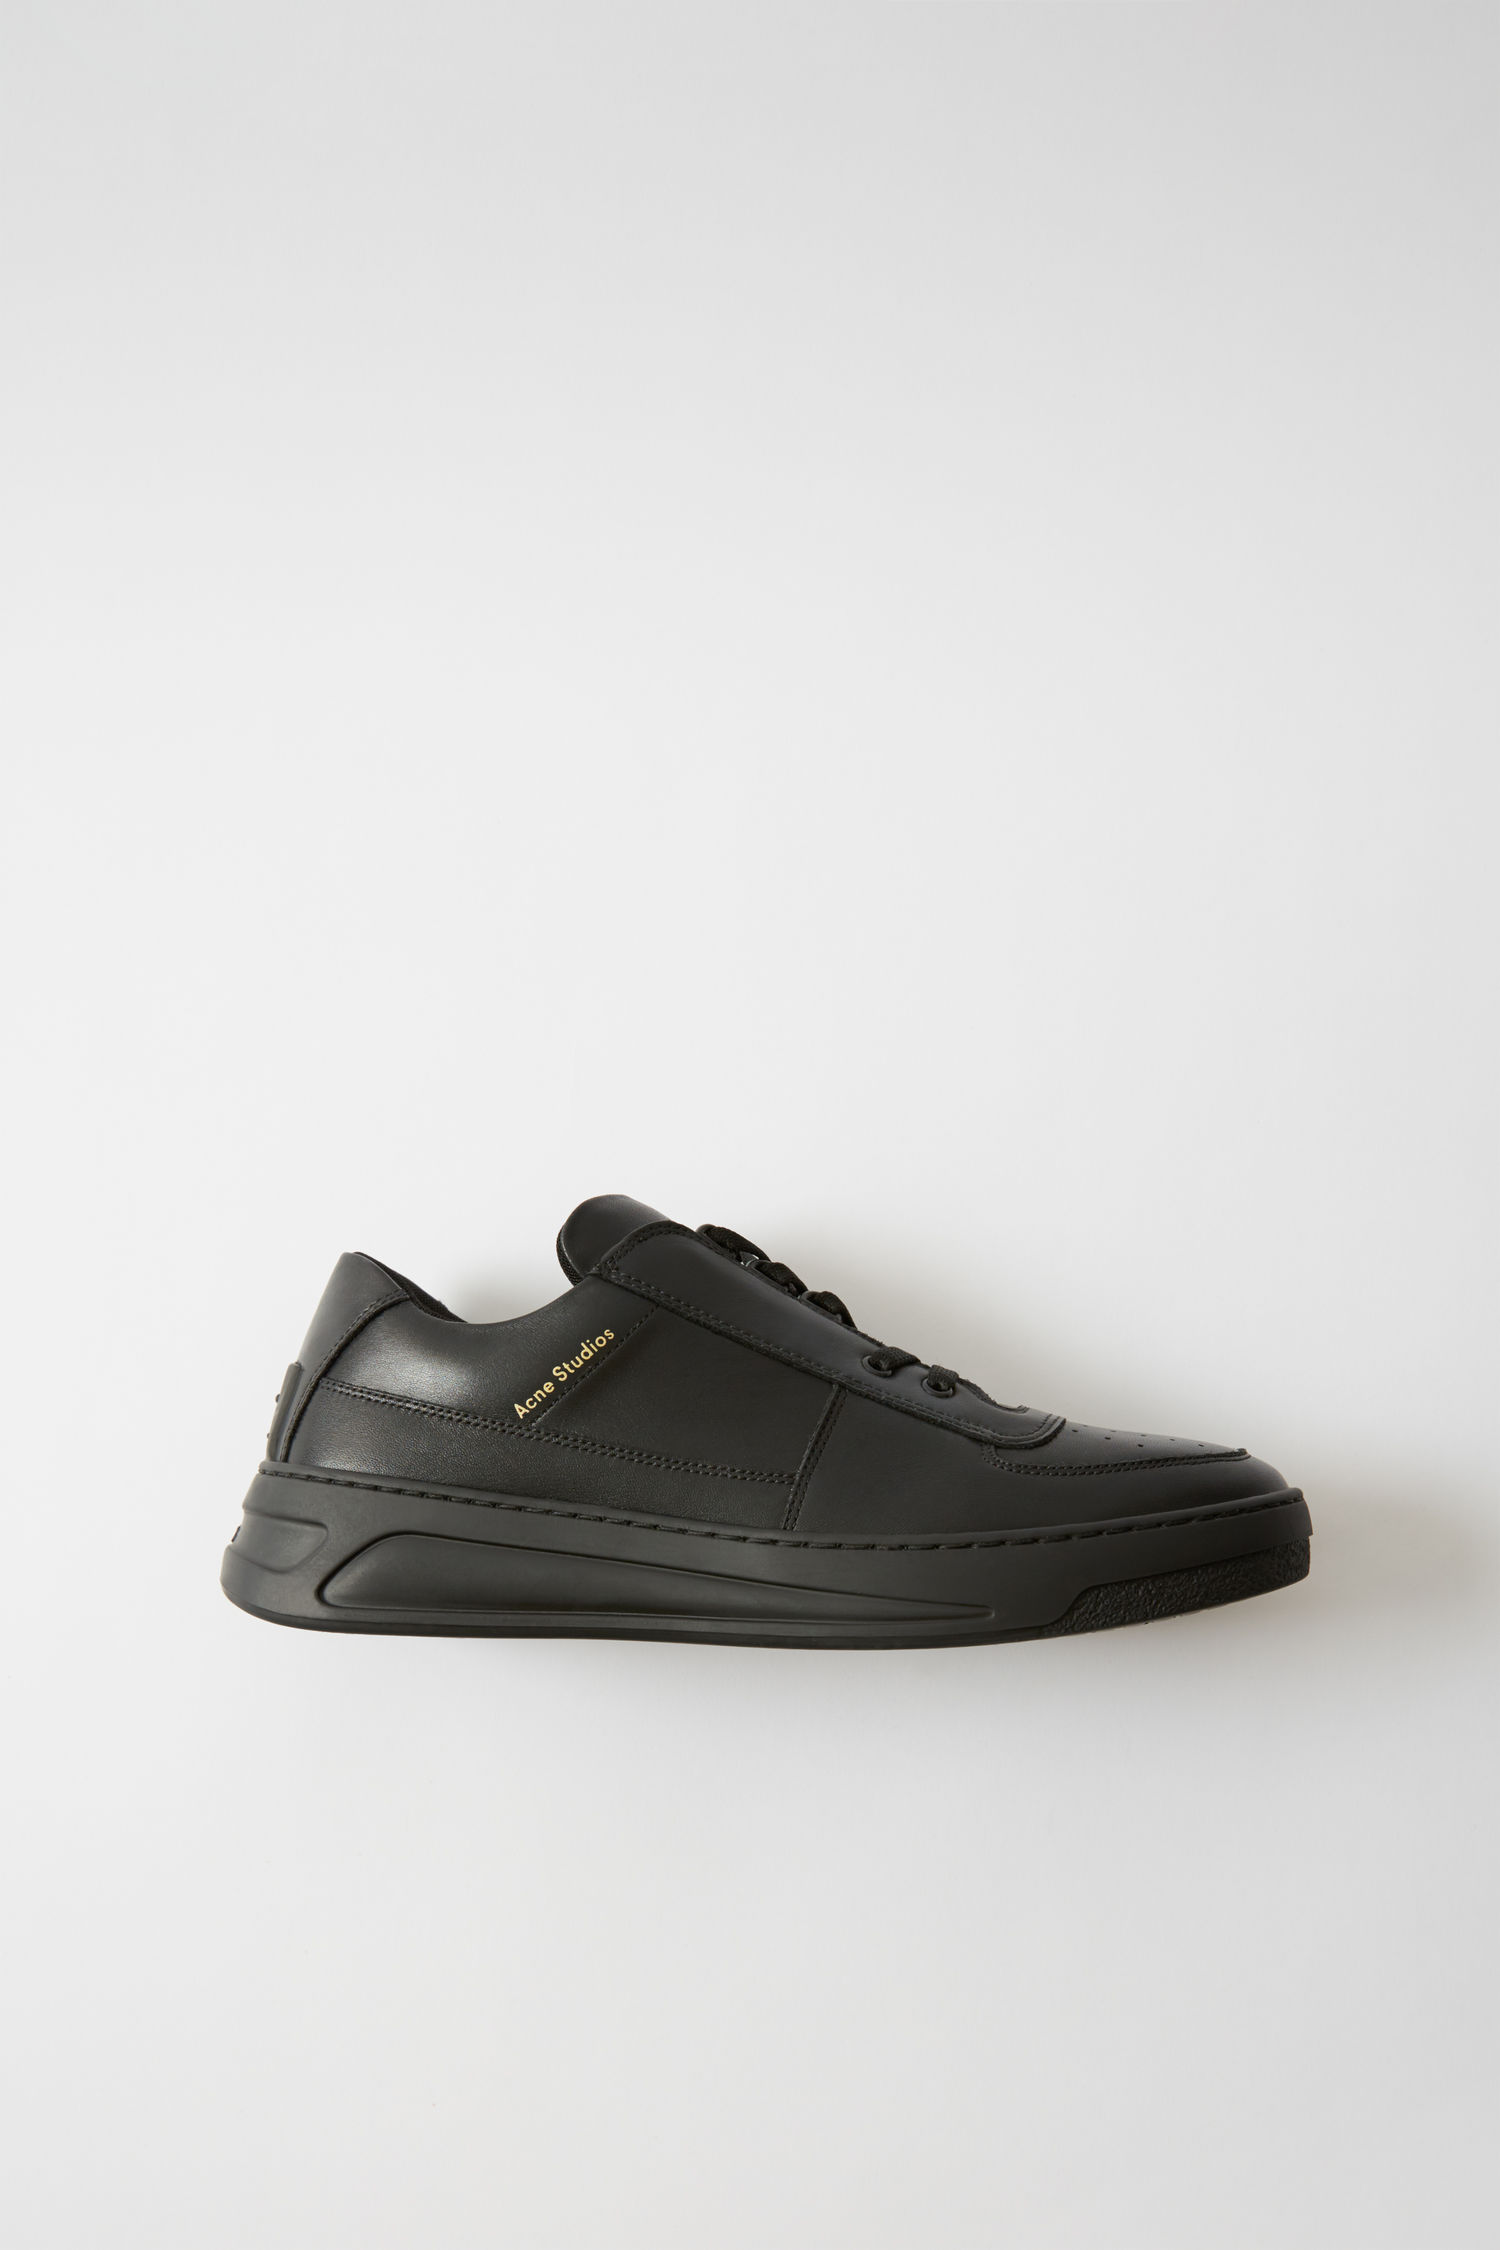 Acne Studios Perey Lace Up in black/black (€320)